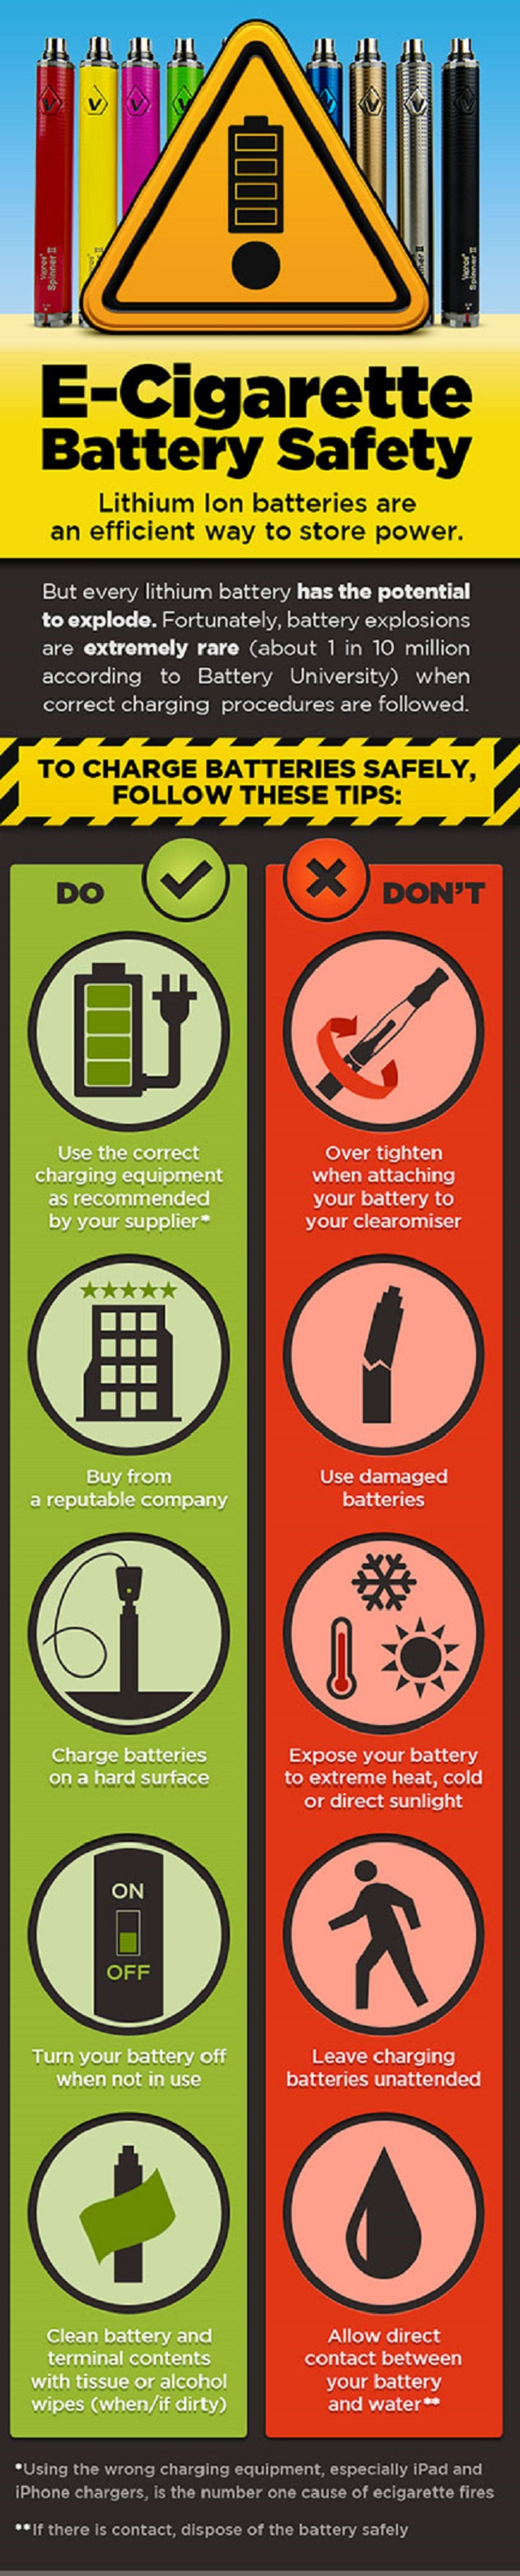 Charging_e-cigarette_safely_infographic_small